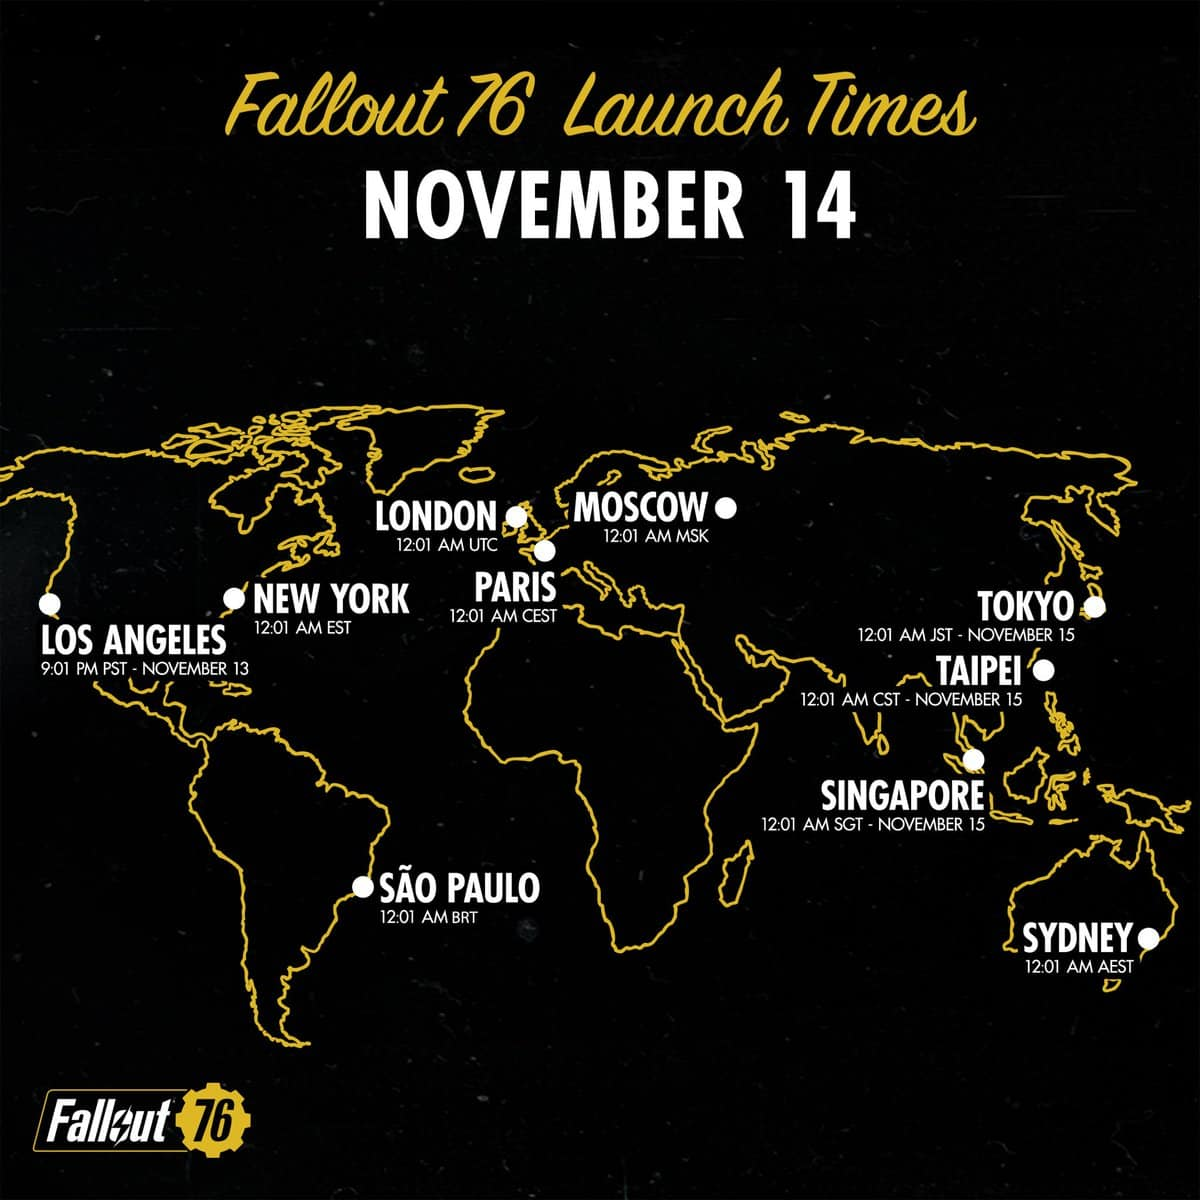 Fallout 76 Adding In New Vaults, PvP Content And More Post